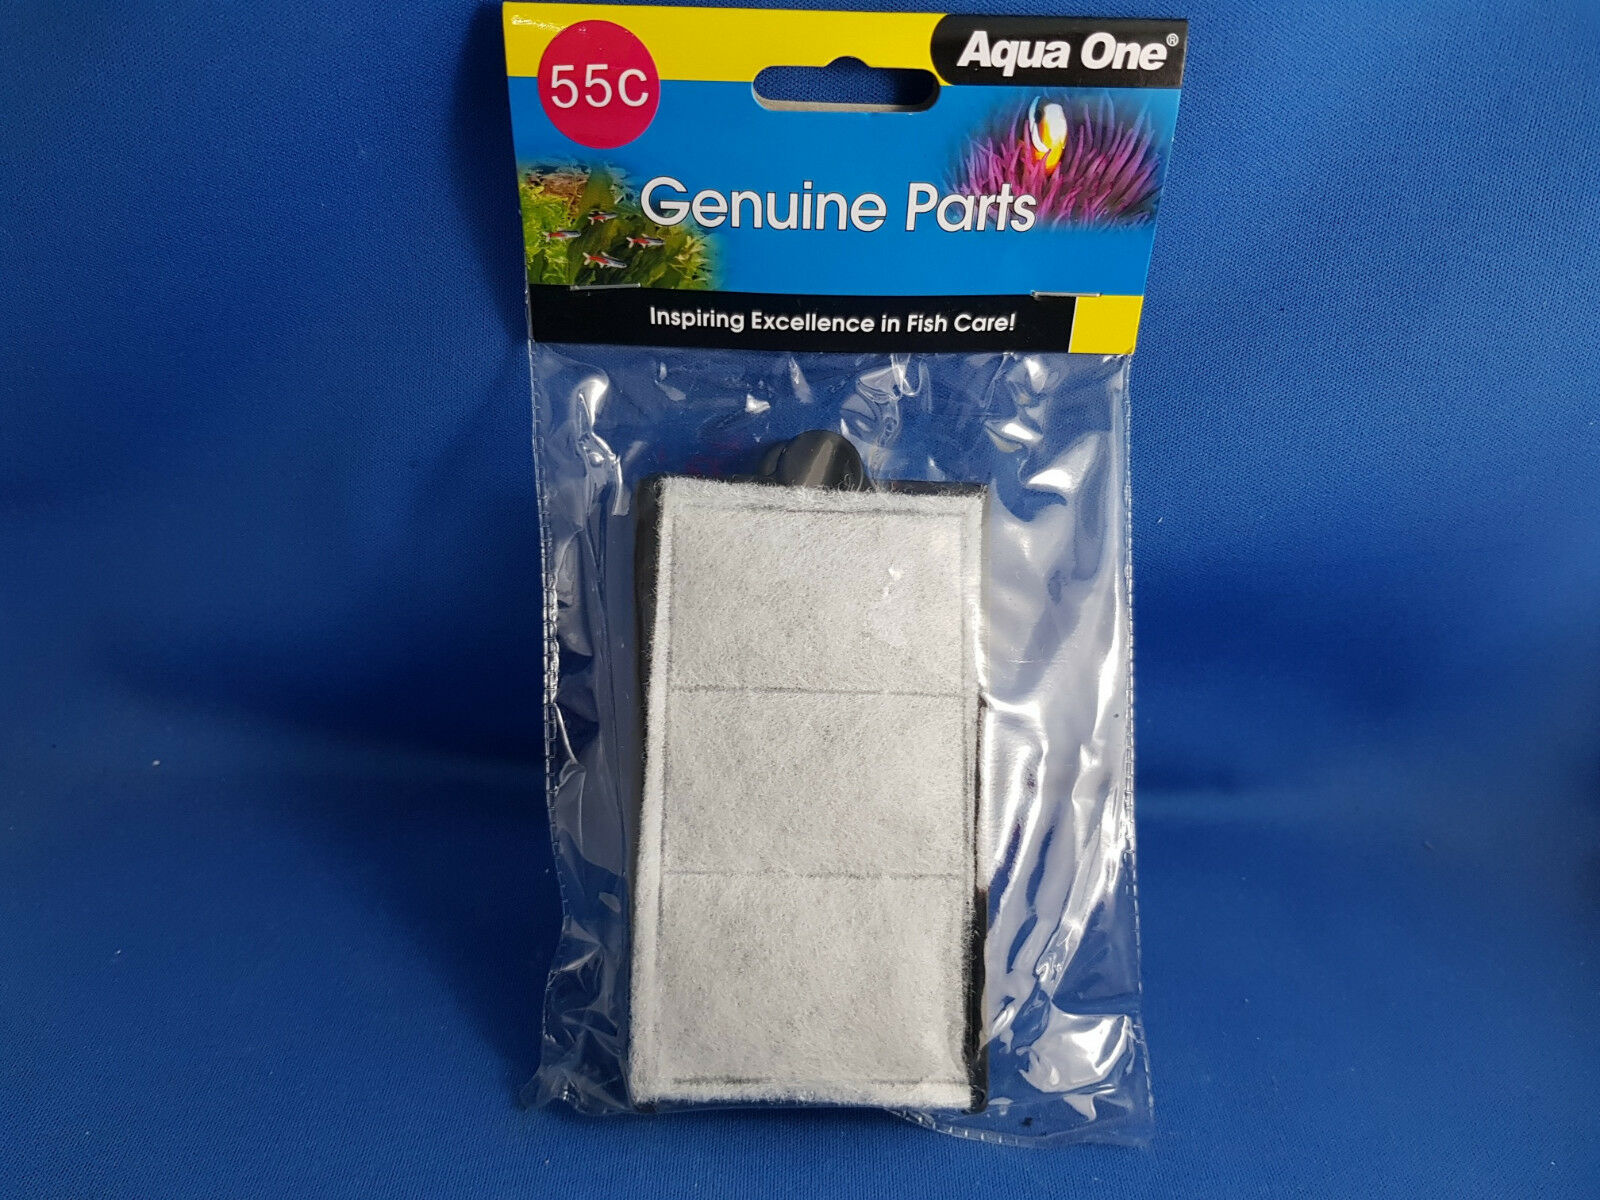 New Aqua One 55c filter cartridge, suits 280 Clearview hang on filter 2pk